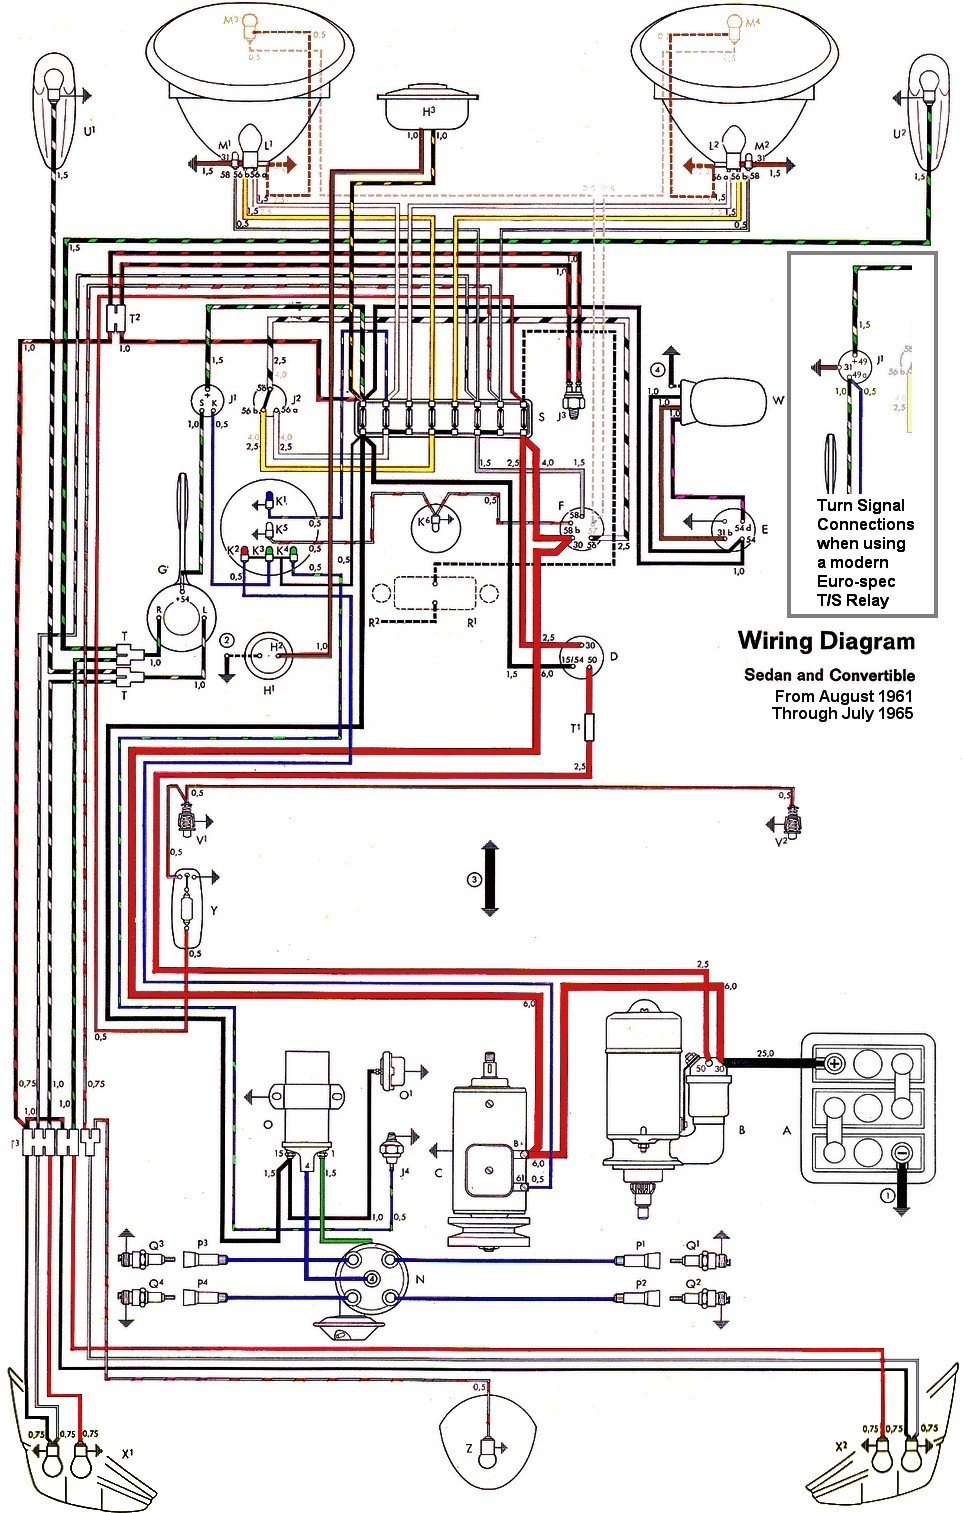 bug_62 65withinset wiring diagram vw beetle sedan and convertible 1961 1965 vw 1971 vw bus wiring diagram at highcare.asia